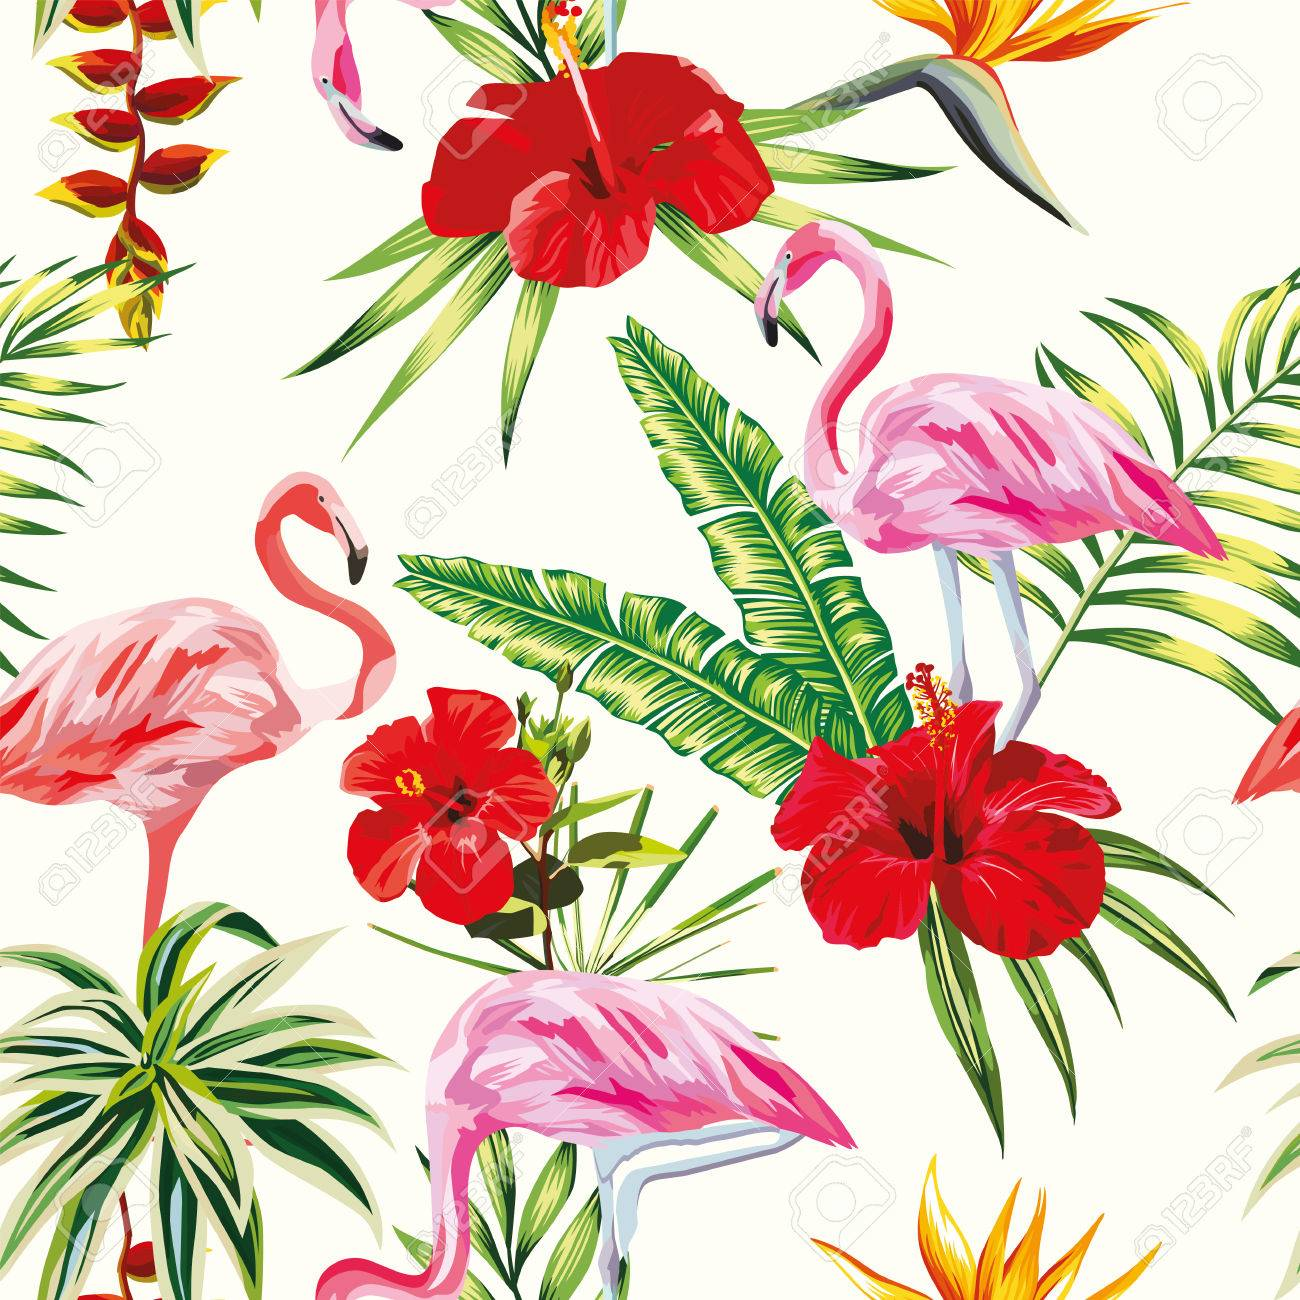 Beach Cheerful Seamless Pattern Of Wallpaper From Tropical Green